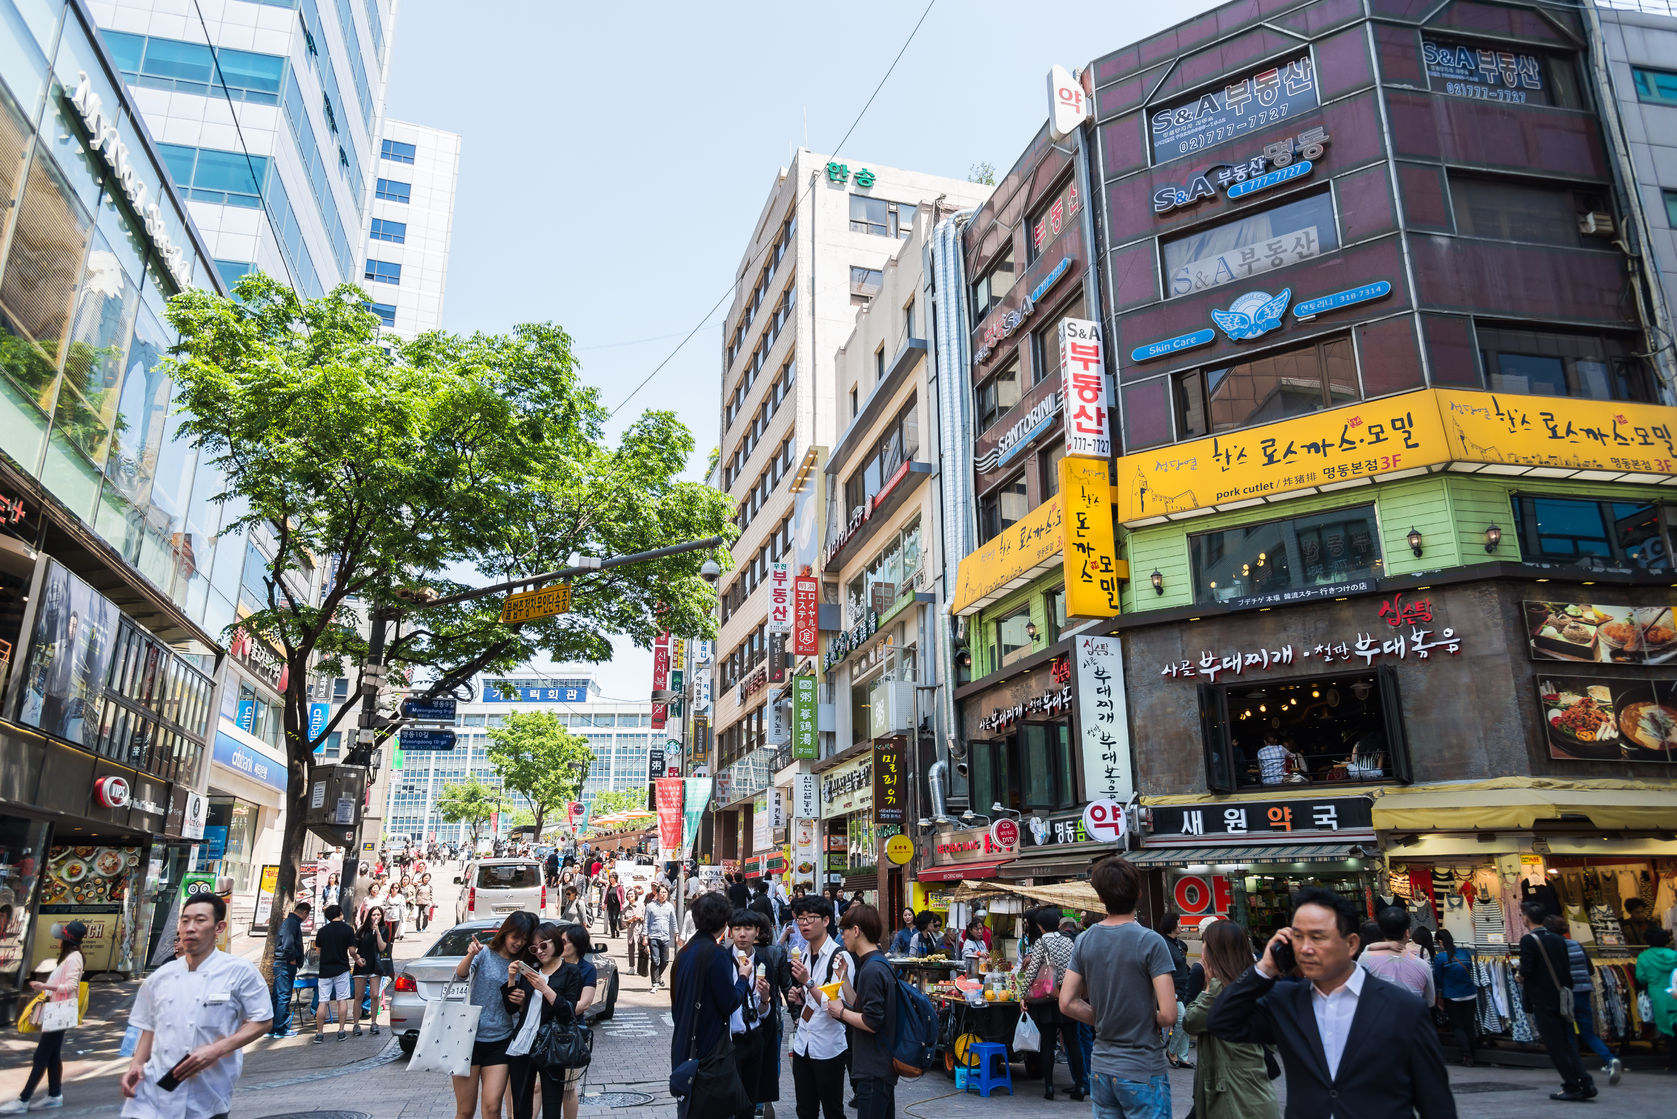 Myeongdong is one of Seoul's oldest downtown areas. It's famous for shopping for all styles and budgets, cosmetic stores galore and the most famous restaurants in Seoul.